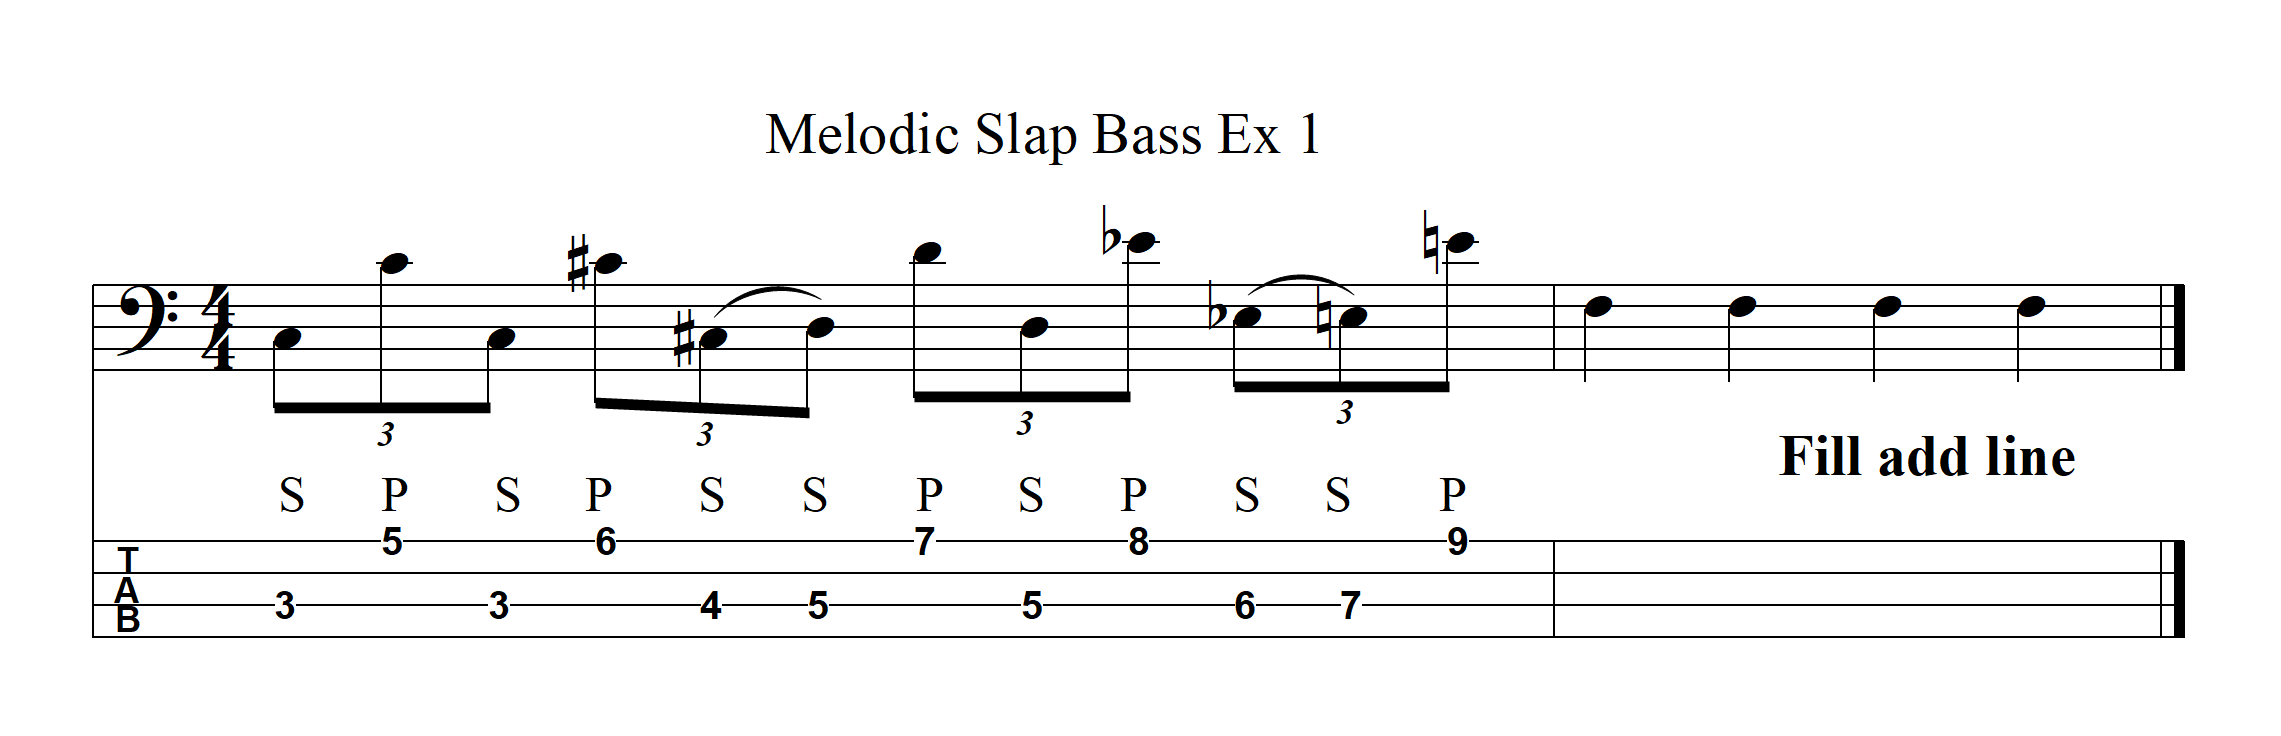 Melodic Slap Bass Example 1